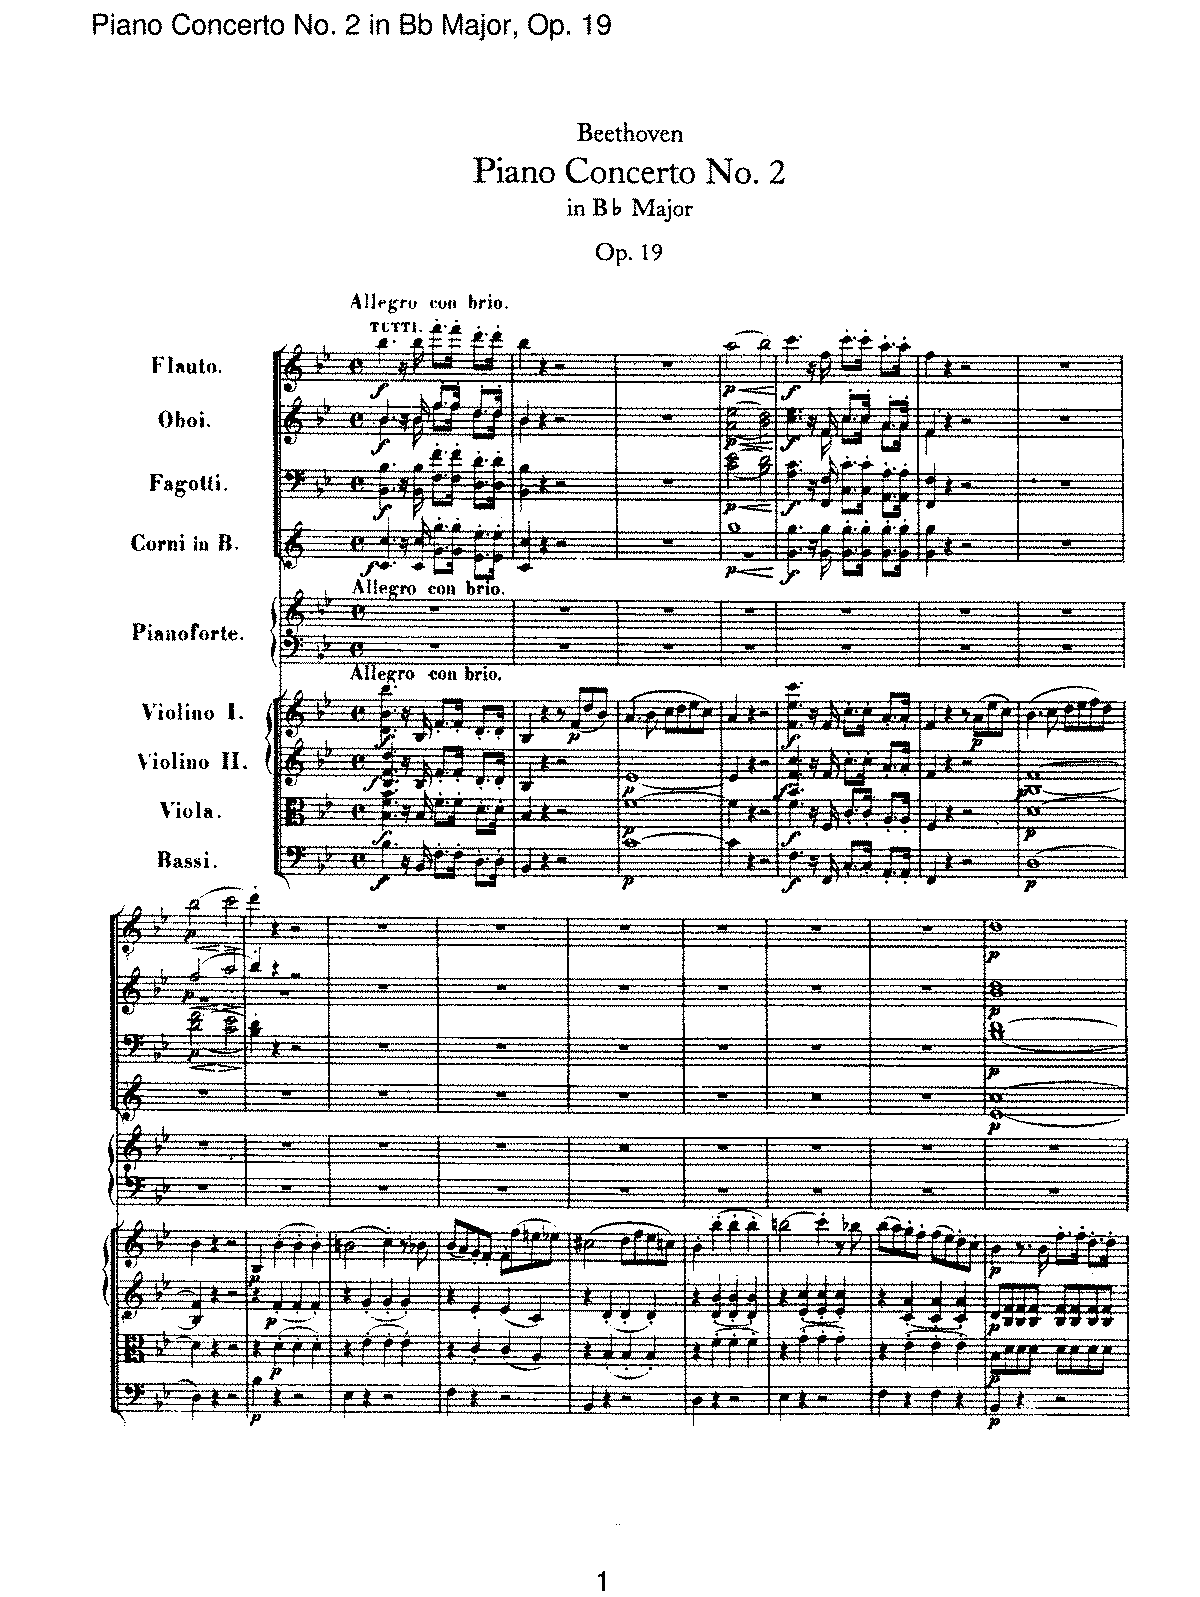 Piano Concerto No. 2 in Bb Major, Op. 19-I. Allegro con brio.pdf